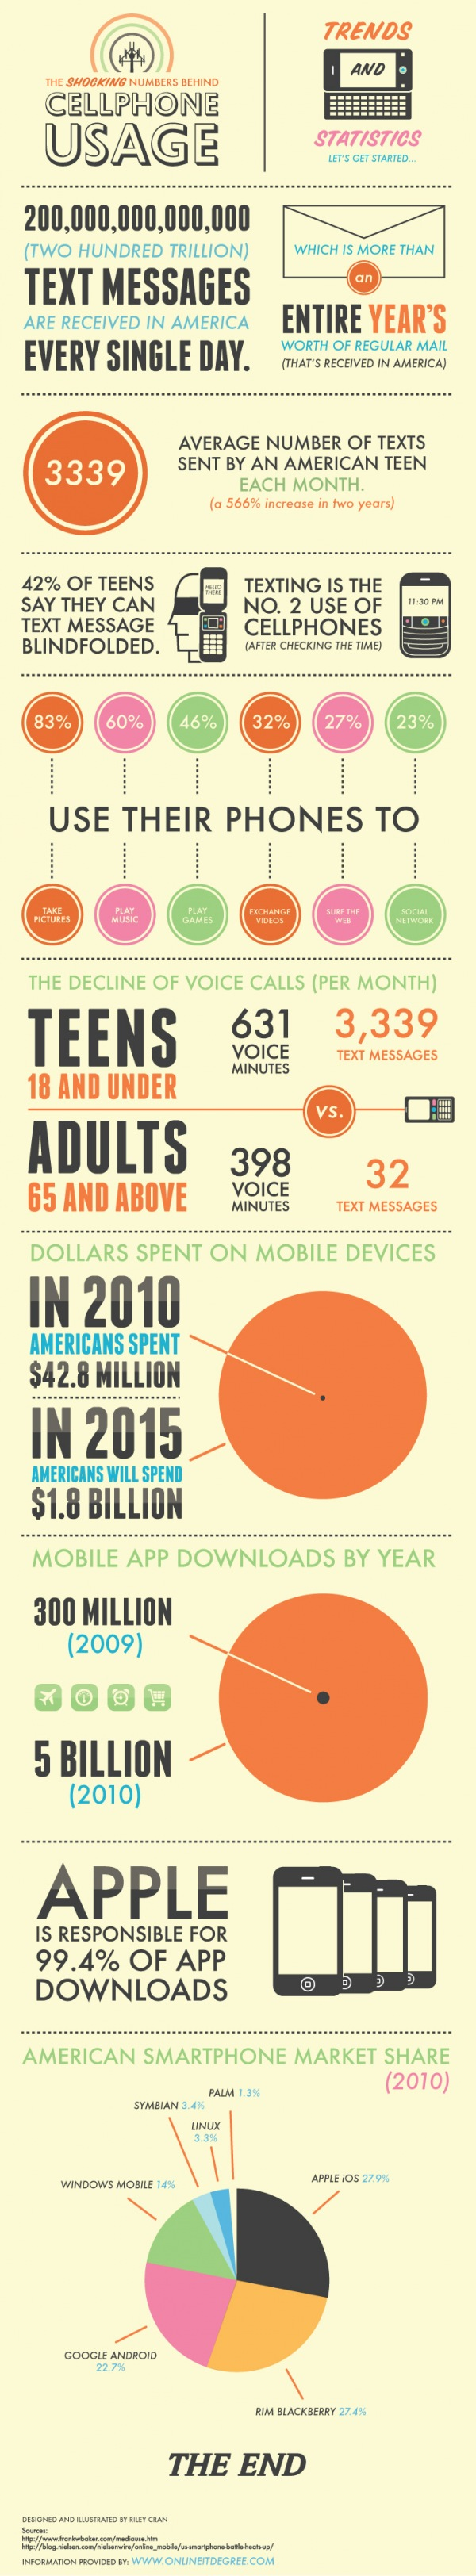 Teenage cellphone usage, the numbers